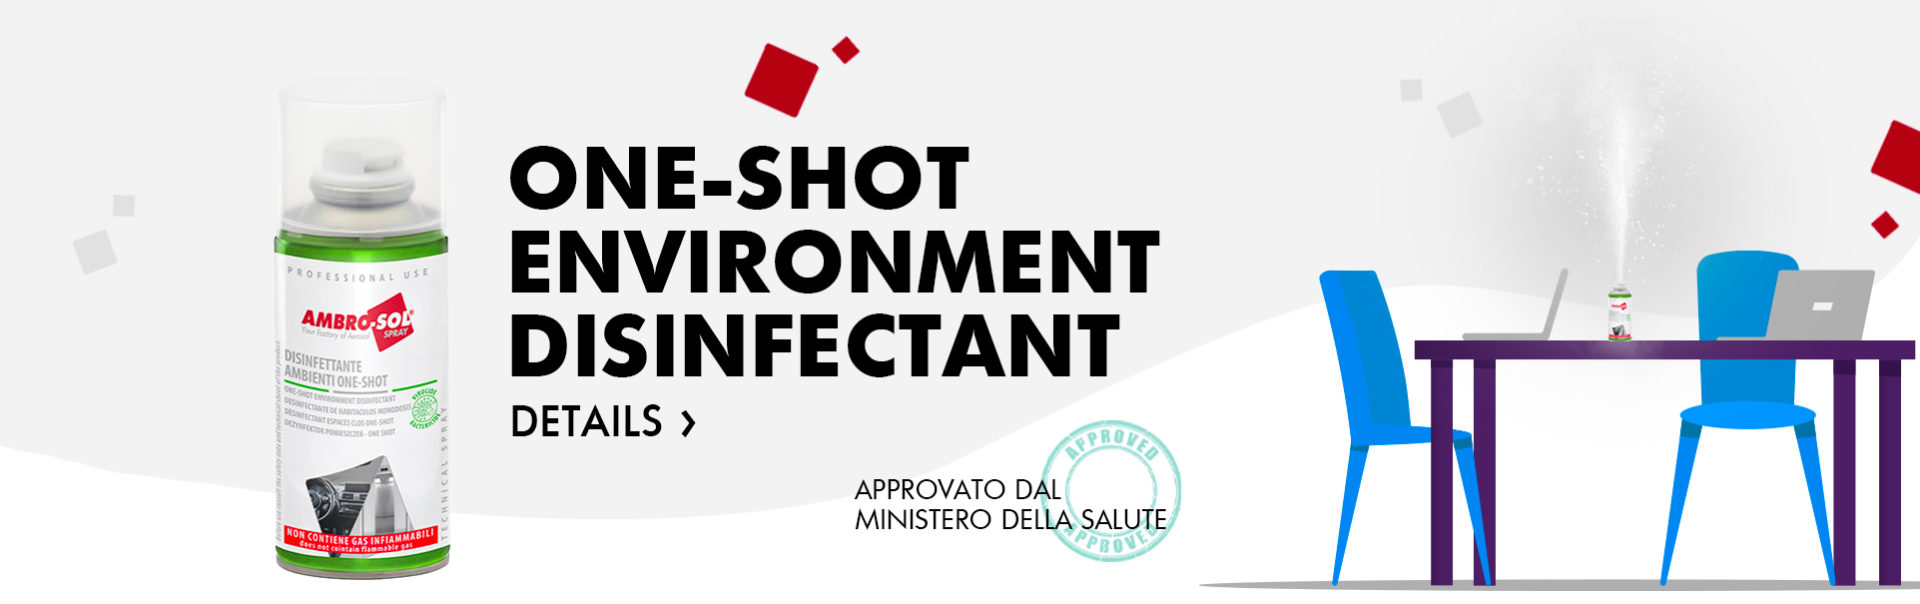 one-shot environment disinfectant A467D ambrosol